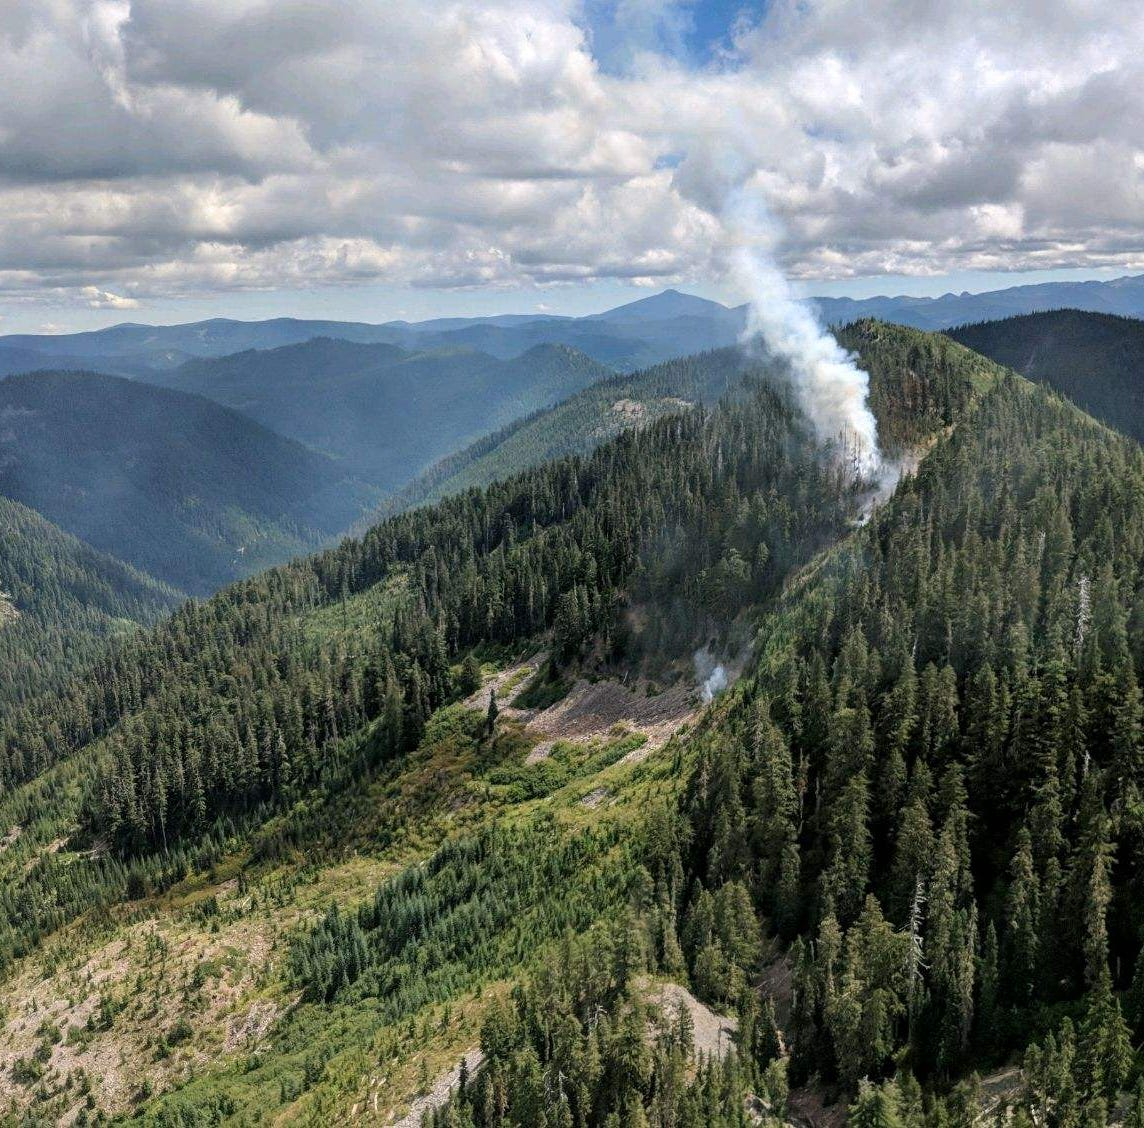 Oregon firefighters make progress against wildfire north of Detroit Lake